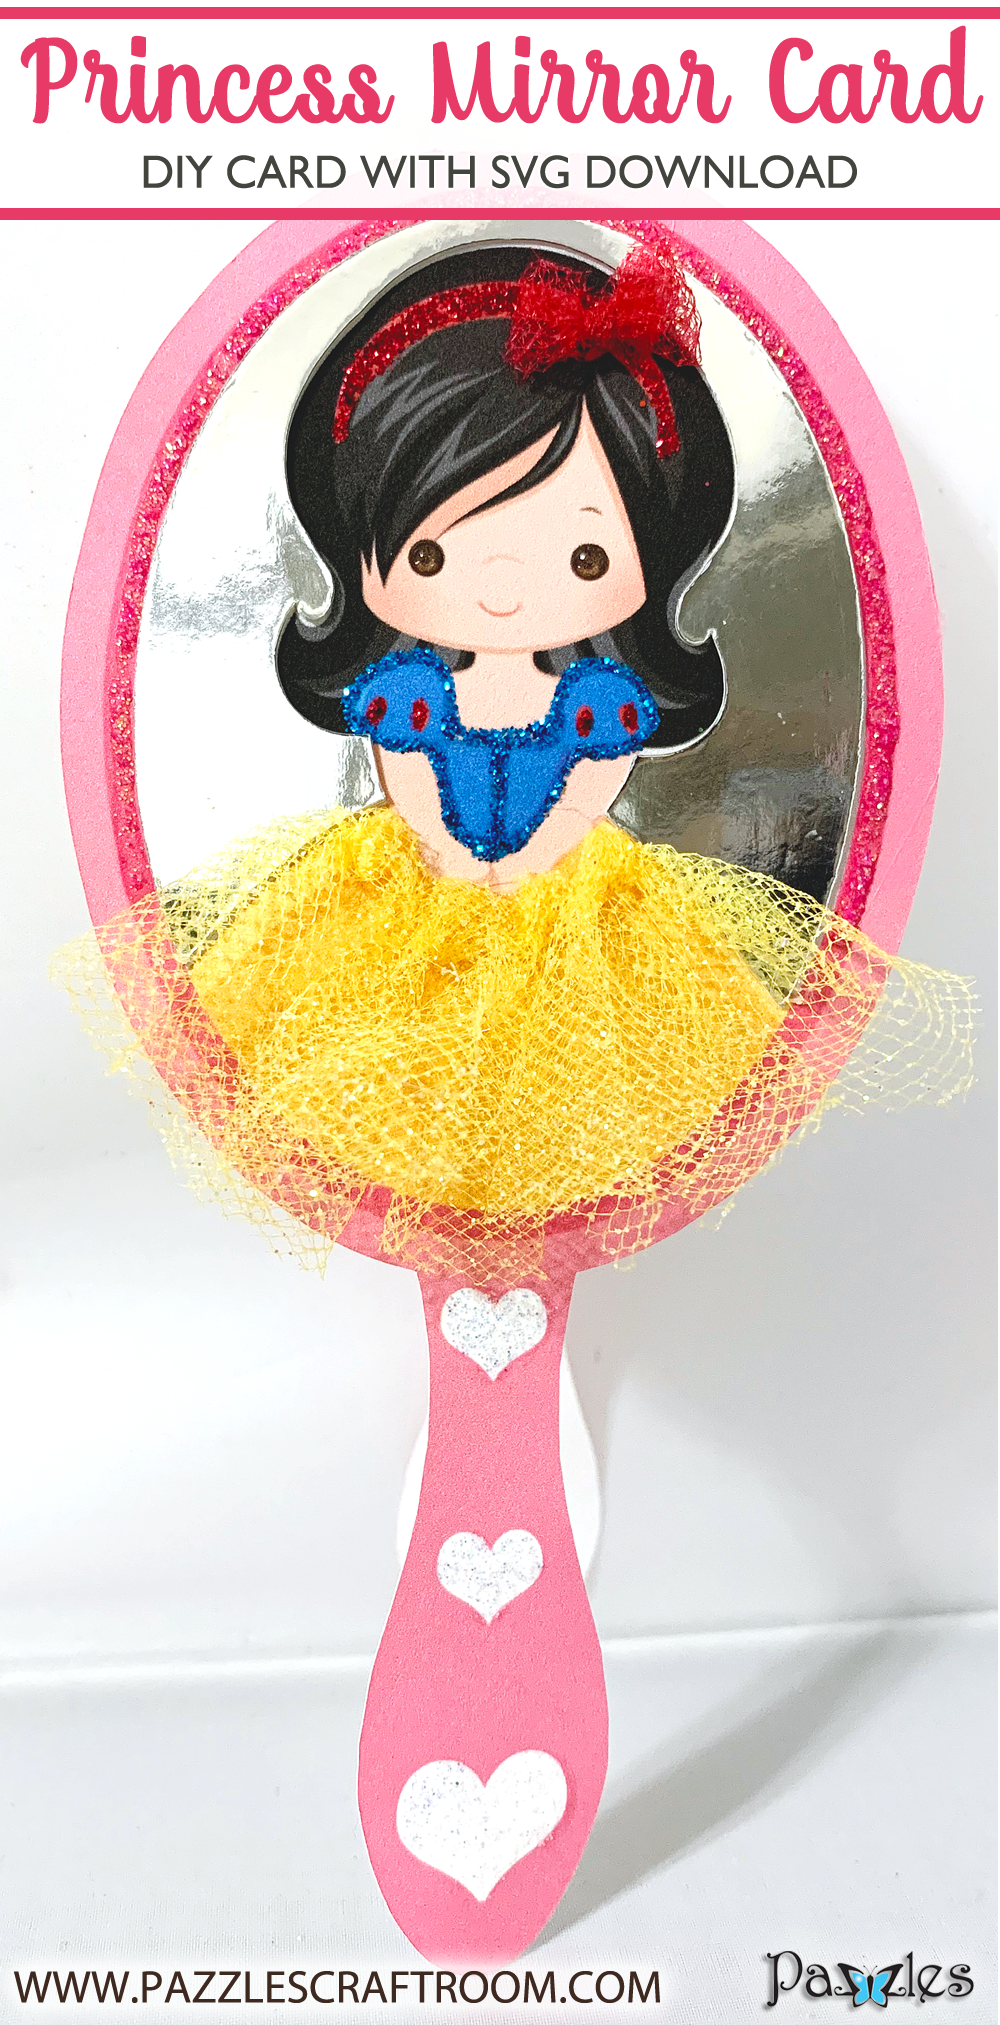 Pazzles Snow White DIY Princess Mirror Card with SVG download. Compatible with all major electronic cutters including Pazzles Inspiration, Cricut, and Silhouette Cameo. Design by Lisa Reyna.